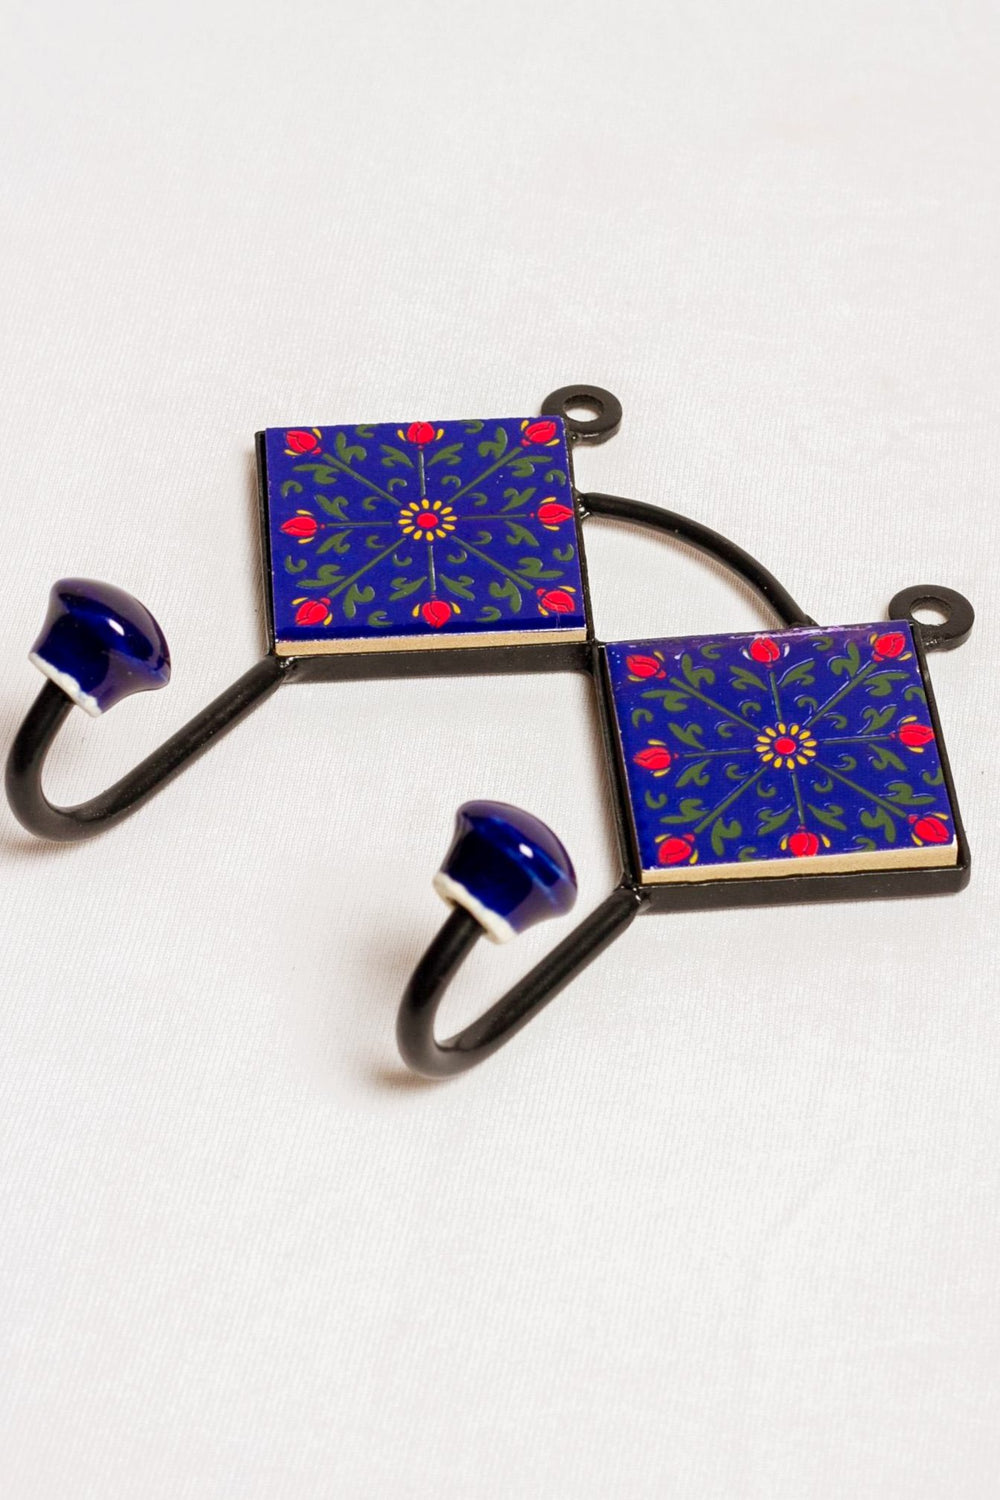 Metal and 2 ceramic tiles 2 wall hook, blue with red floral motif